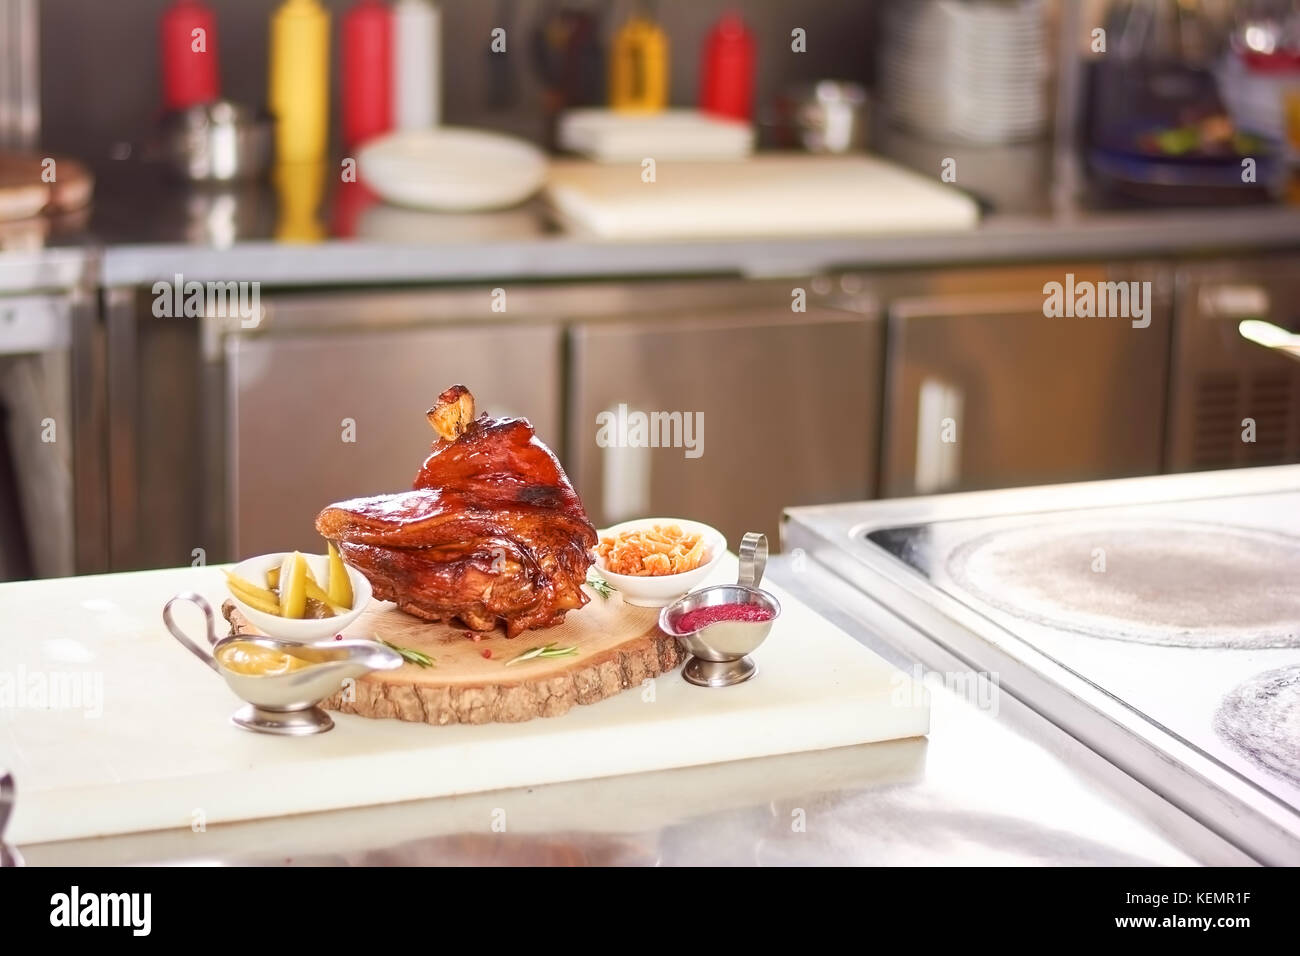 Delicious shank of lamb on narural wood. Large piece of roasted lamb leg served with sauces and spices. Fresh cooked - Stock Image